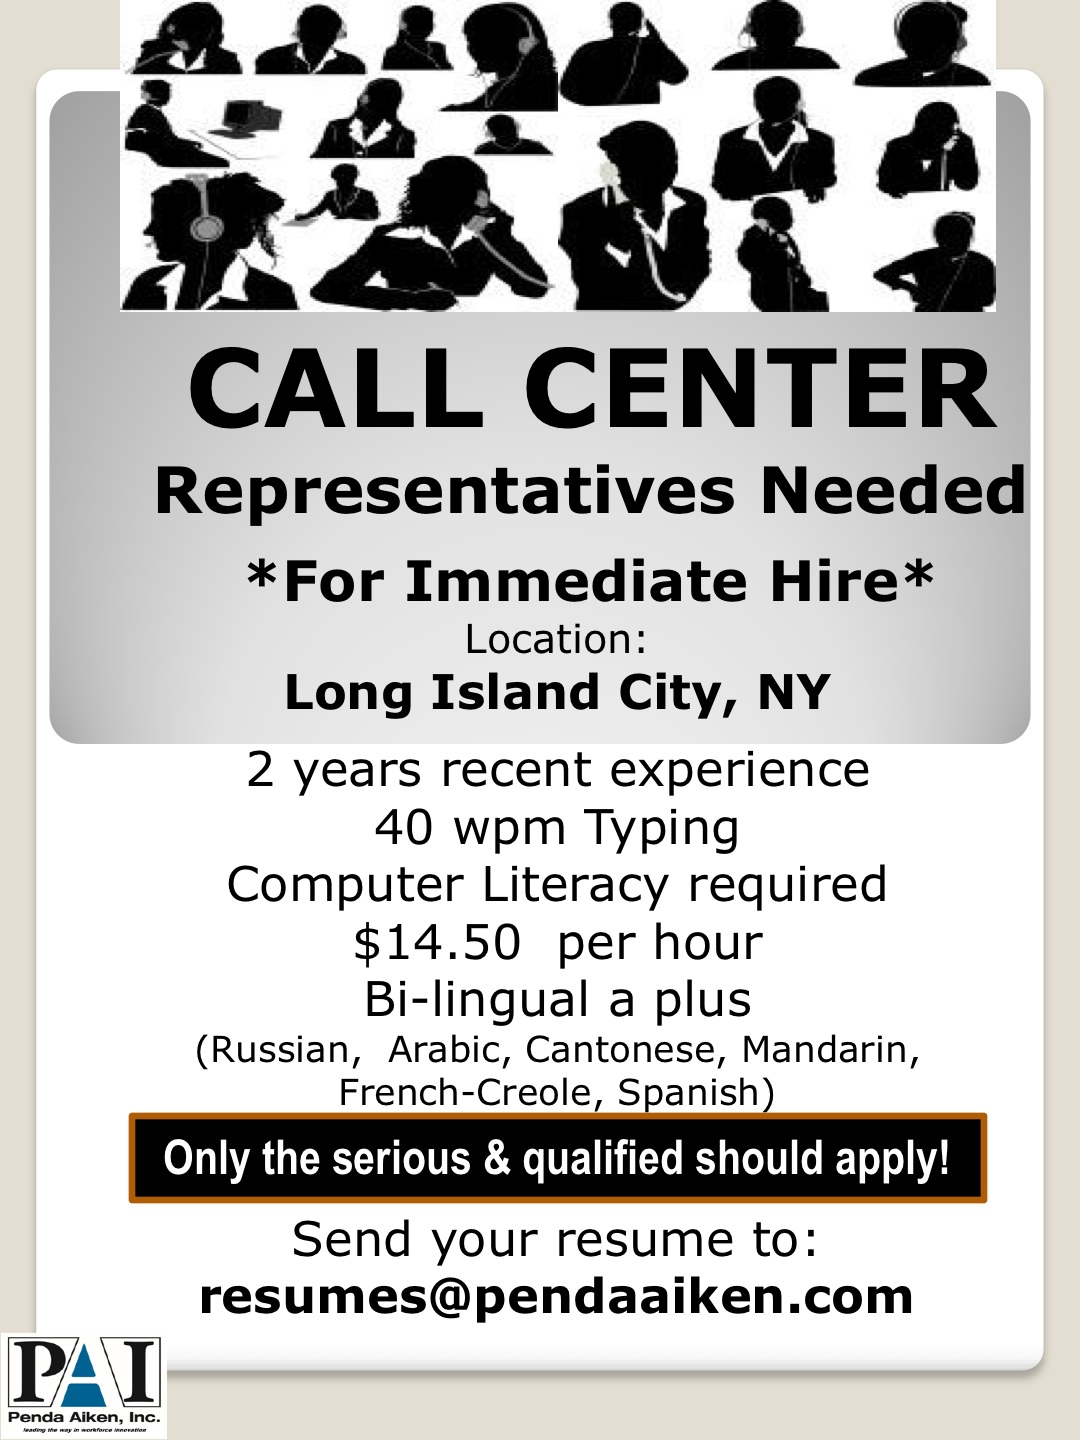 call center employment opportunity